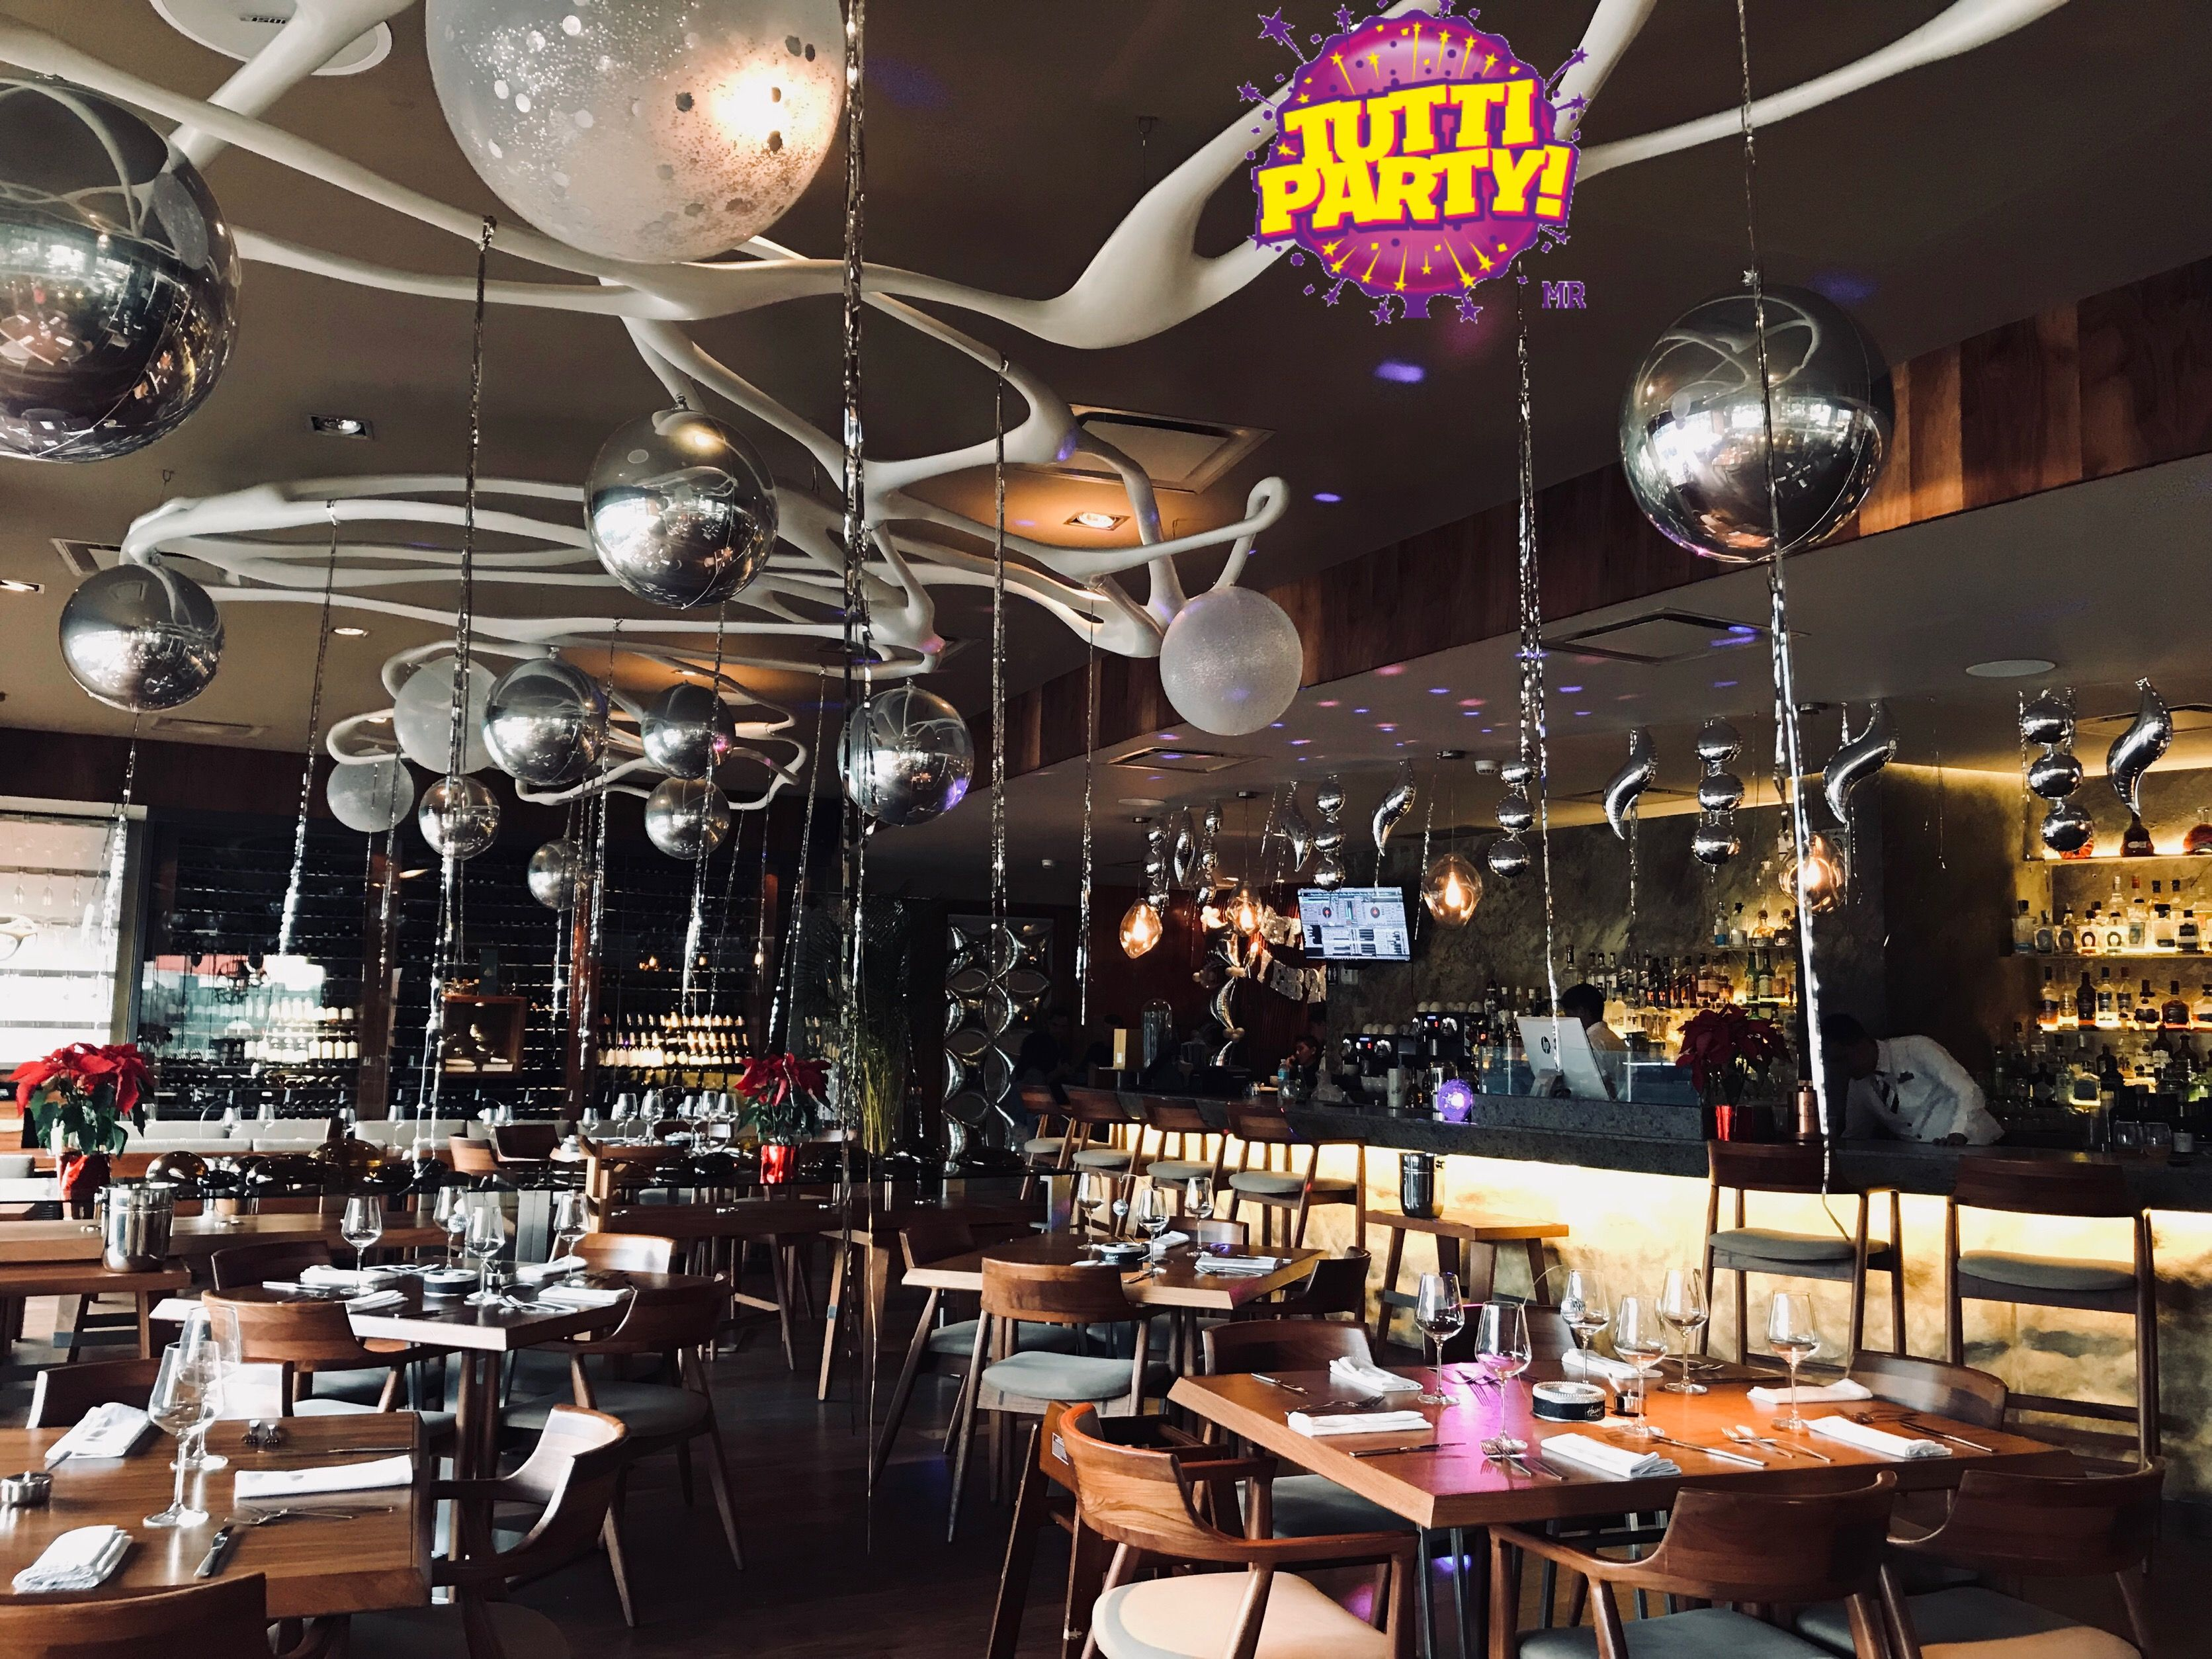 80 S Elegant Party Decorations Restaurant Party Ideas New Year